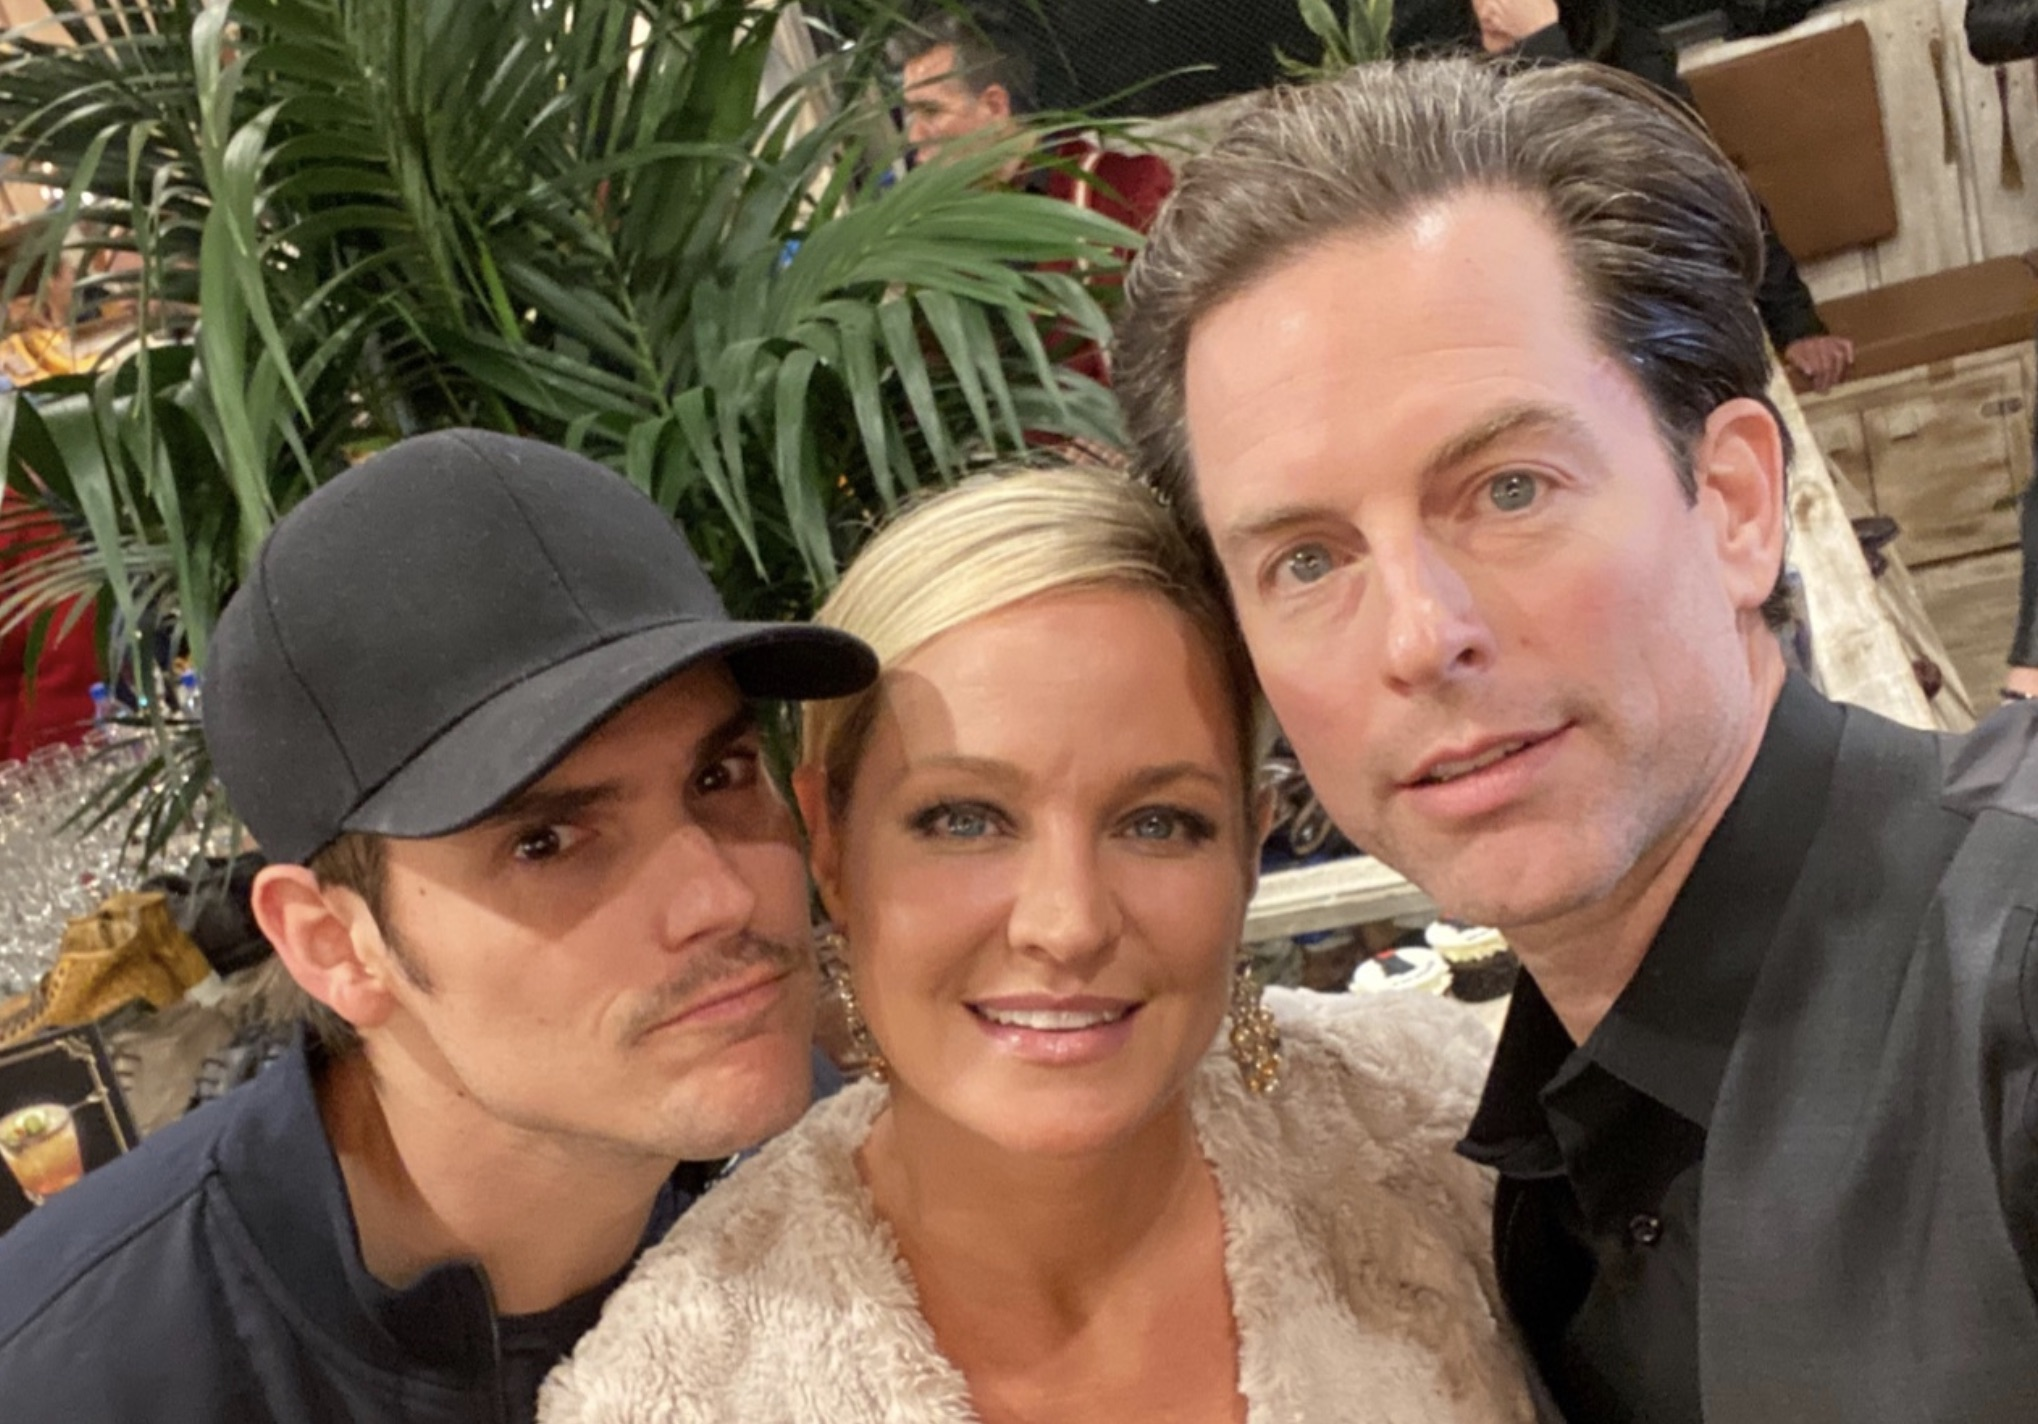 Mark Grossman, Sharon Case, Michael Muhney, Shadam, Adam Newman, Young and the Restless-https://twitter.com/michaelmuhney/status/1207138842739757056/photo/1